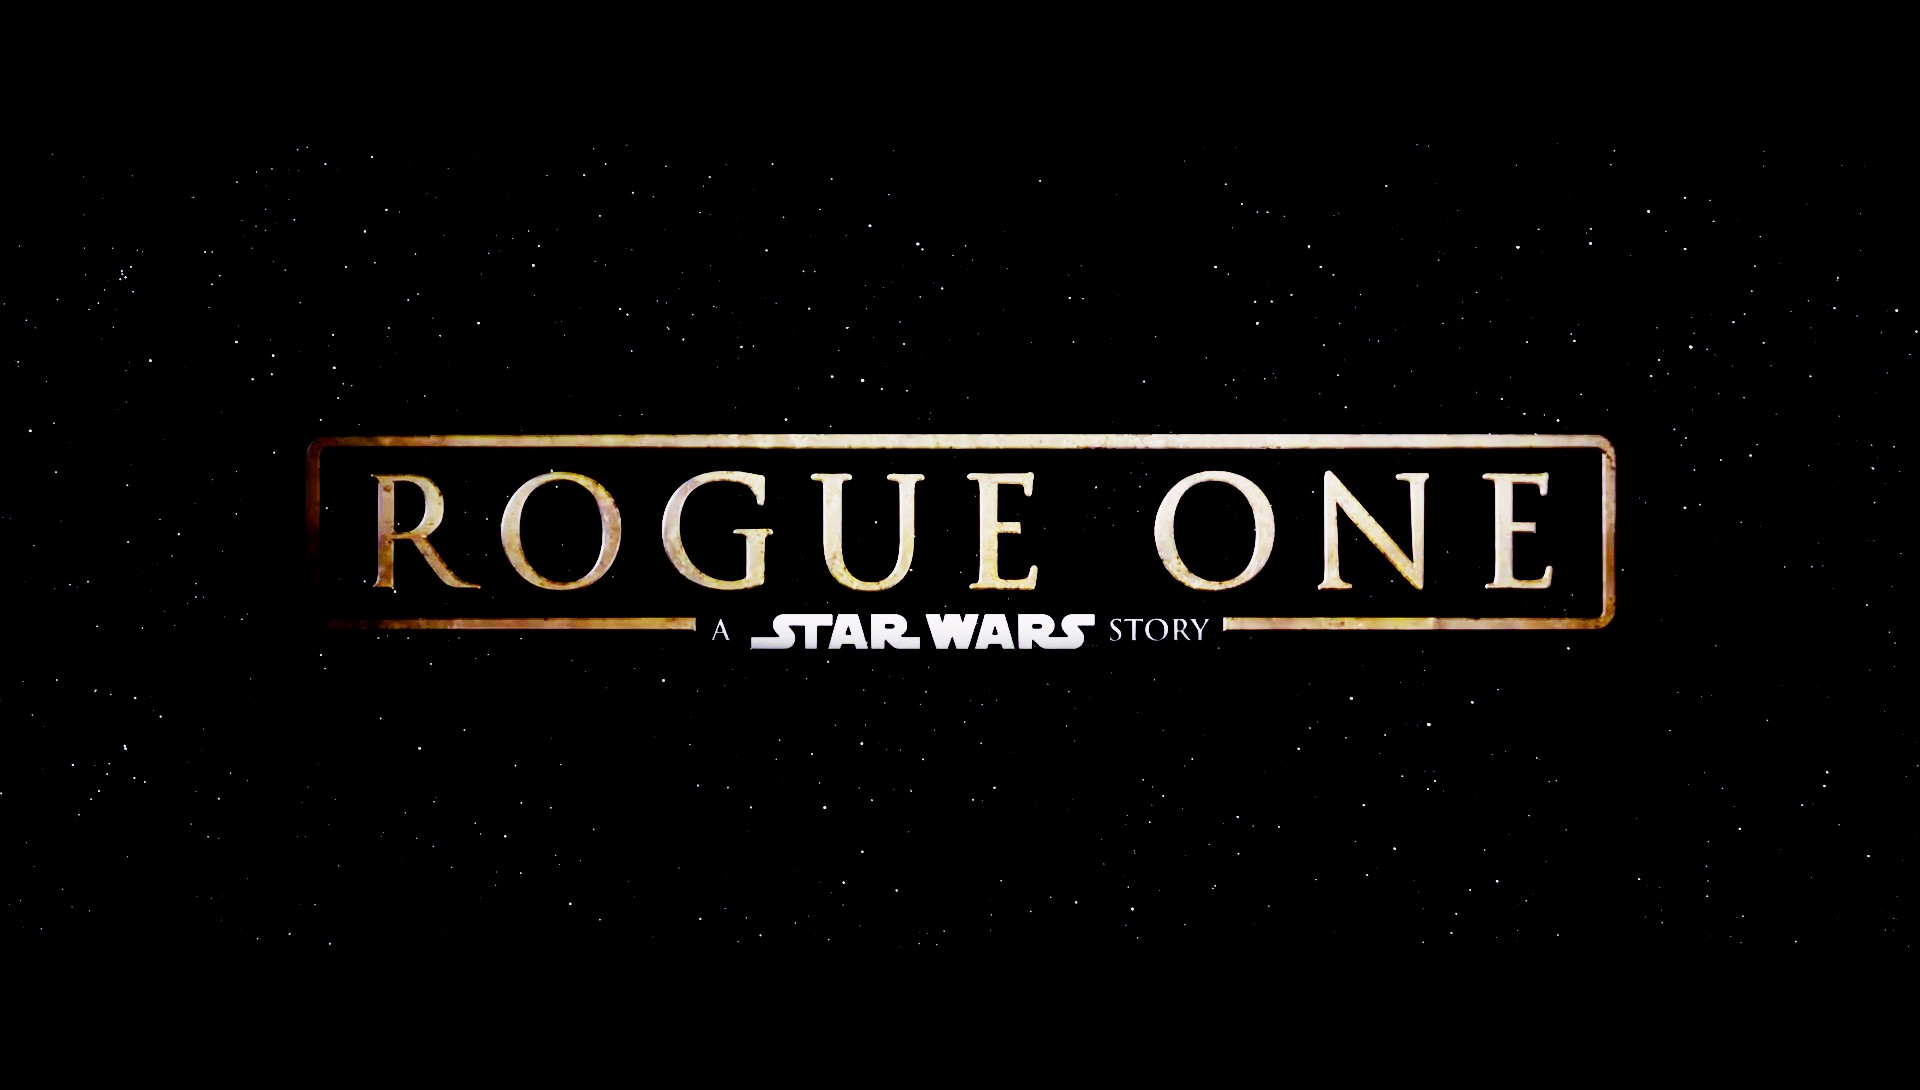 rogue-one-a-star-wars-story-logo-wallpaper-03857